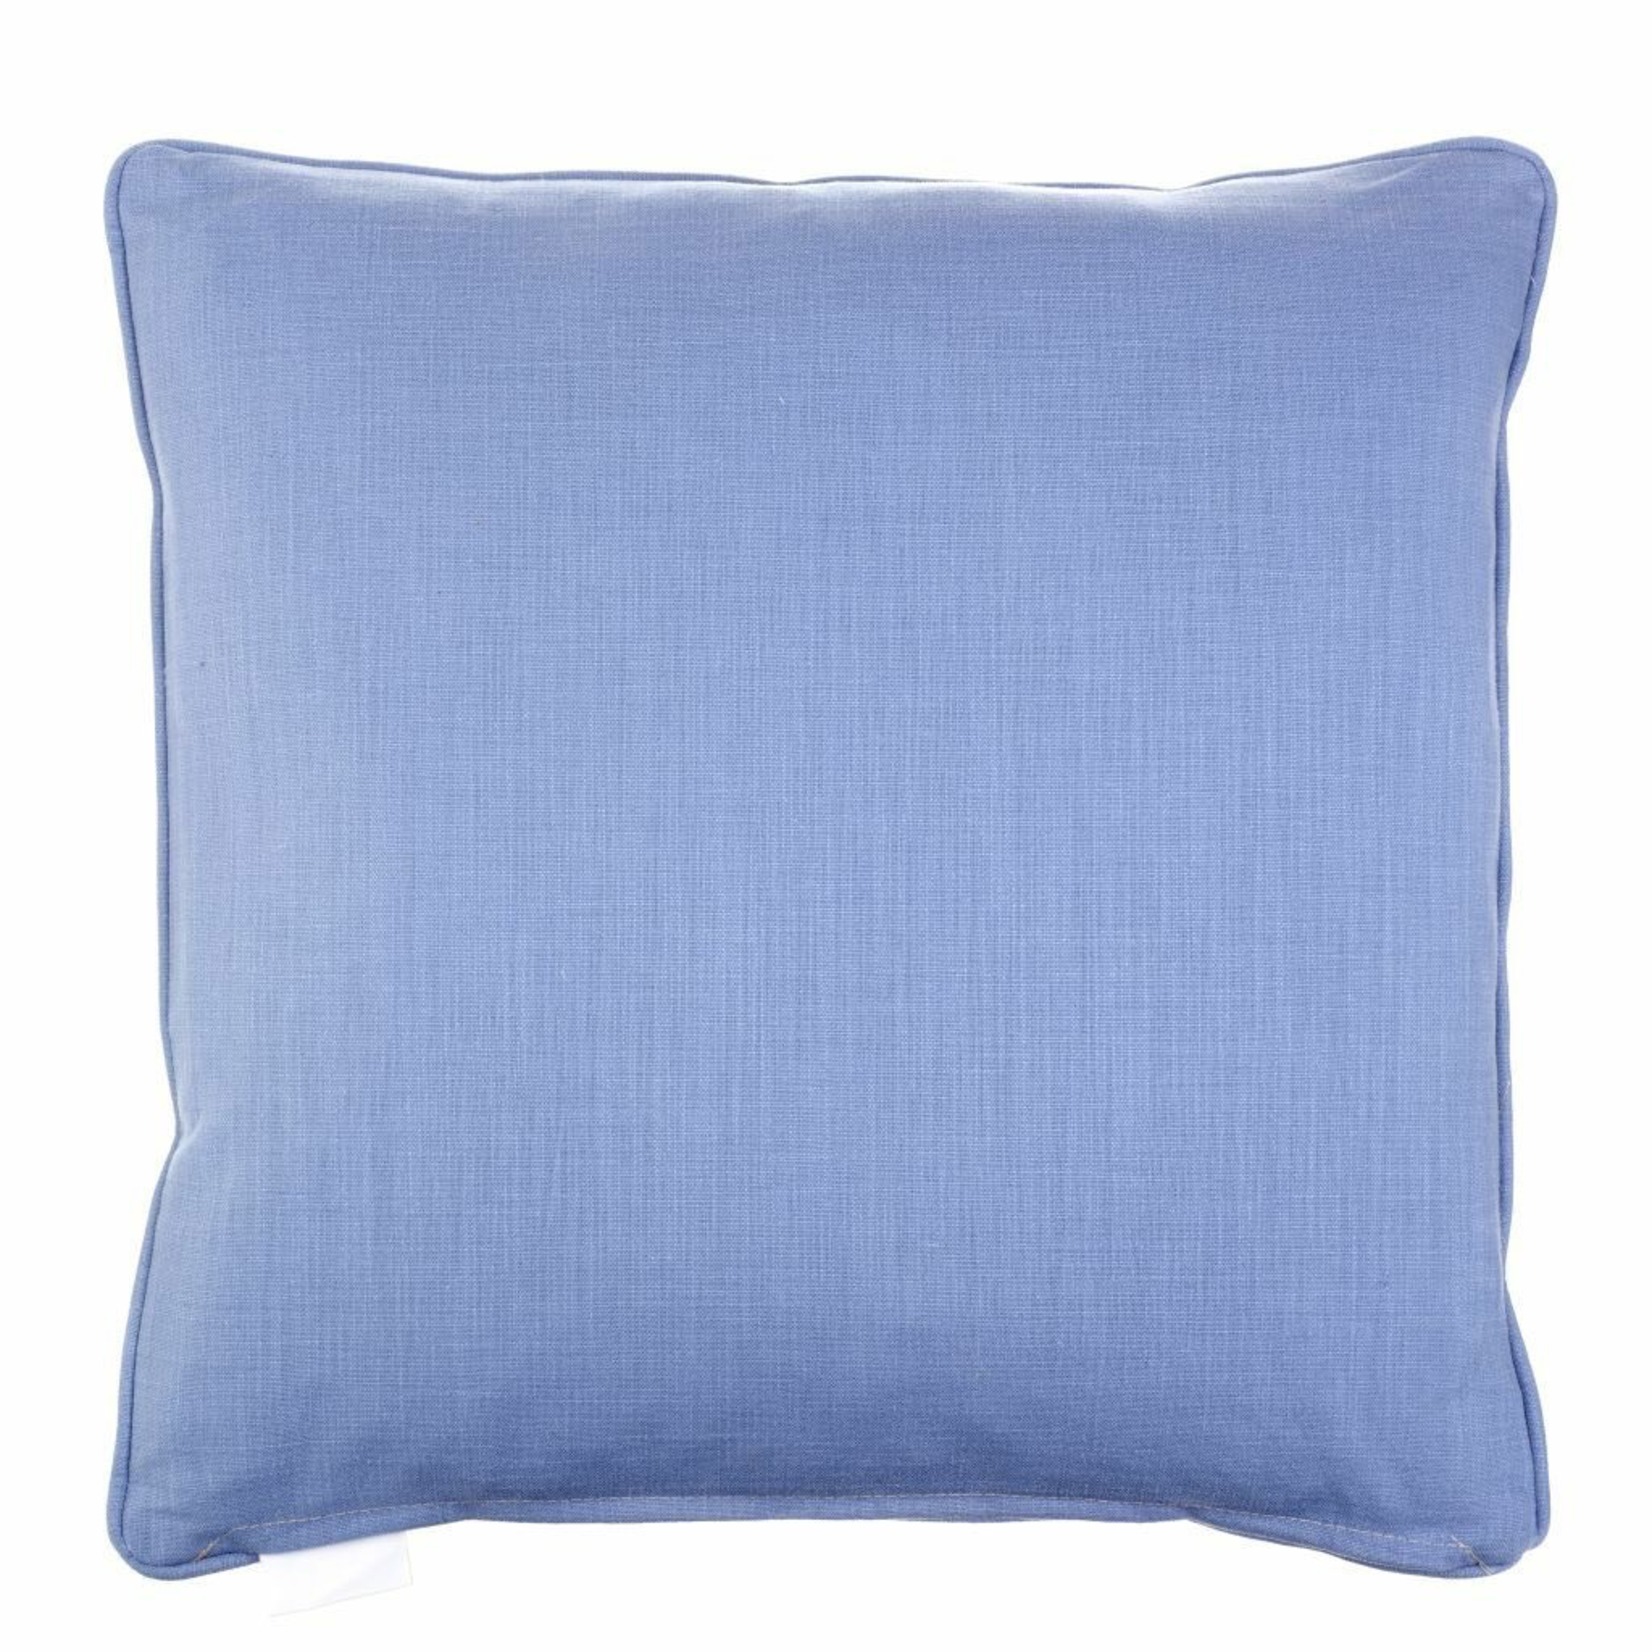 Voyage Country Hollyhock Square Cushion 50 x 50 cm